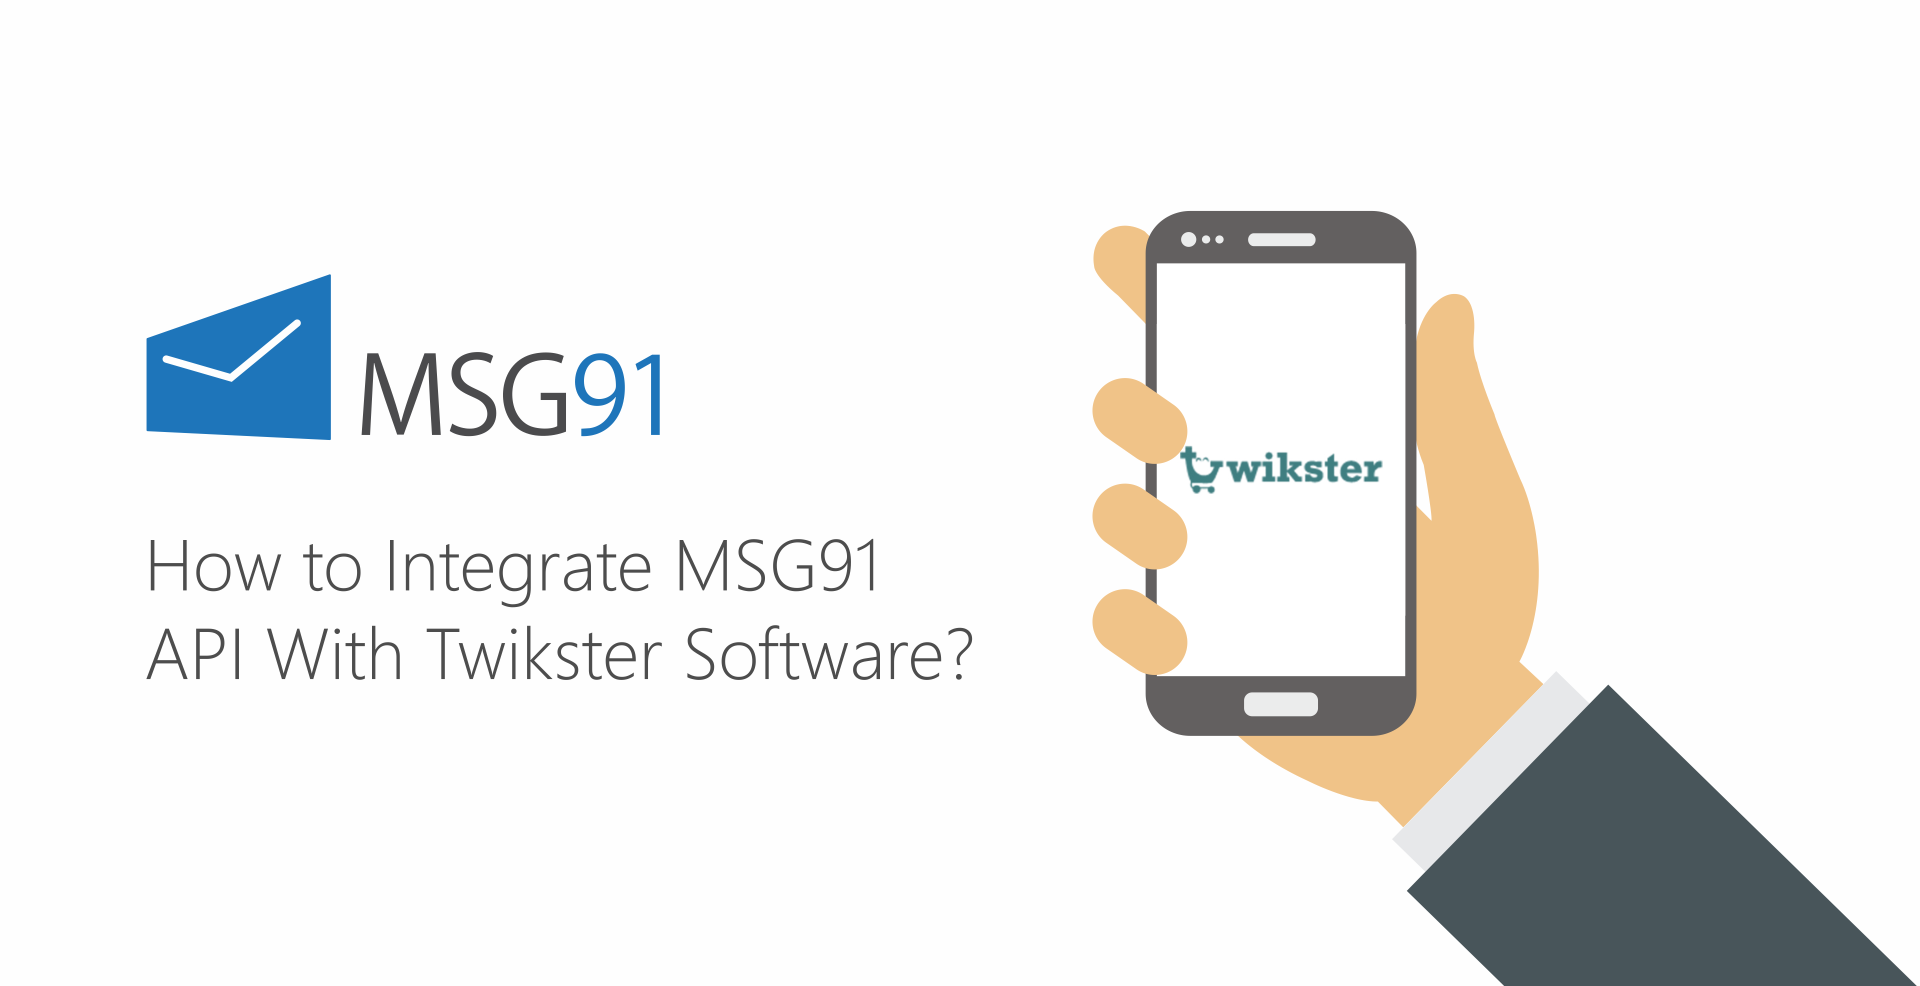 How to Integrate MSG91 API With Twikster Software?